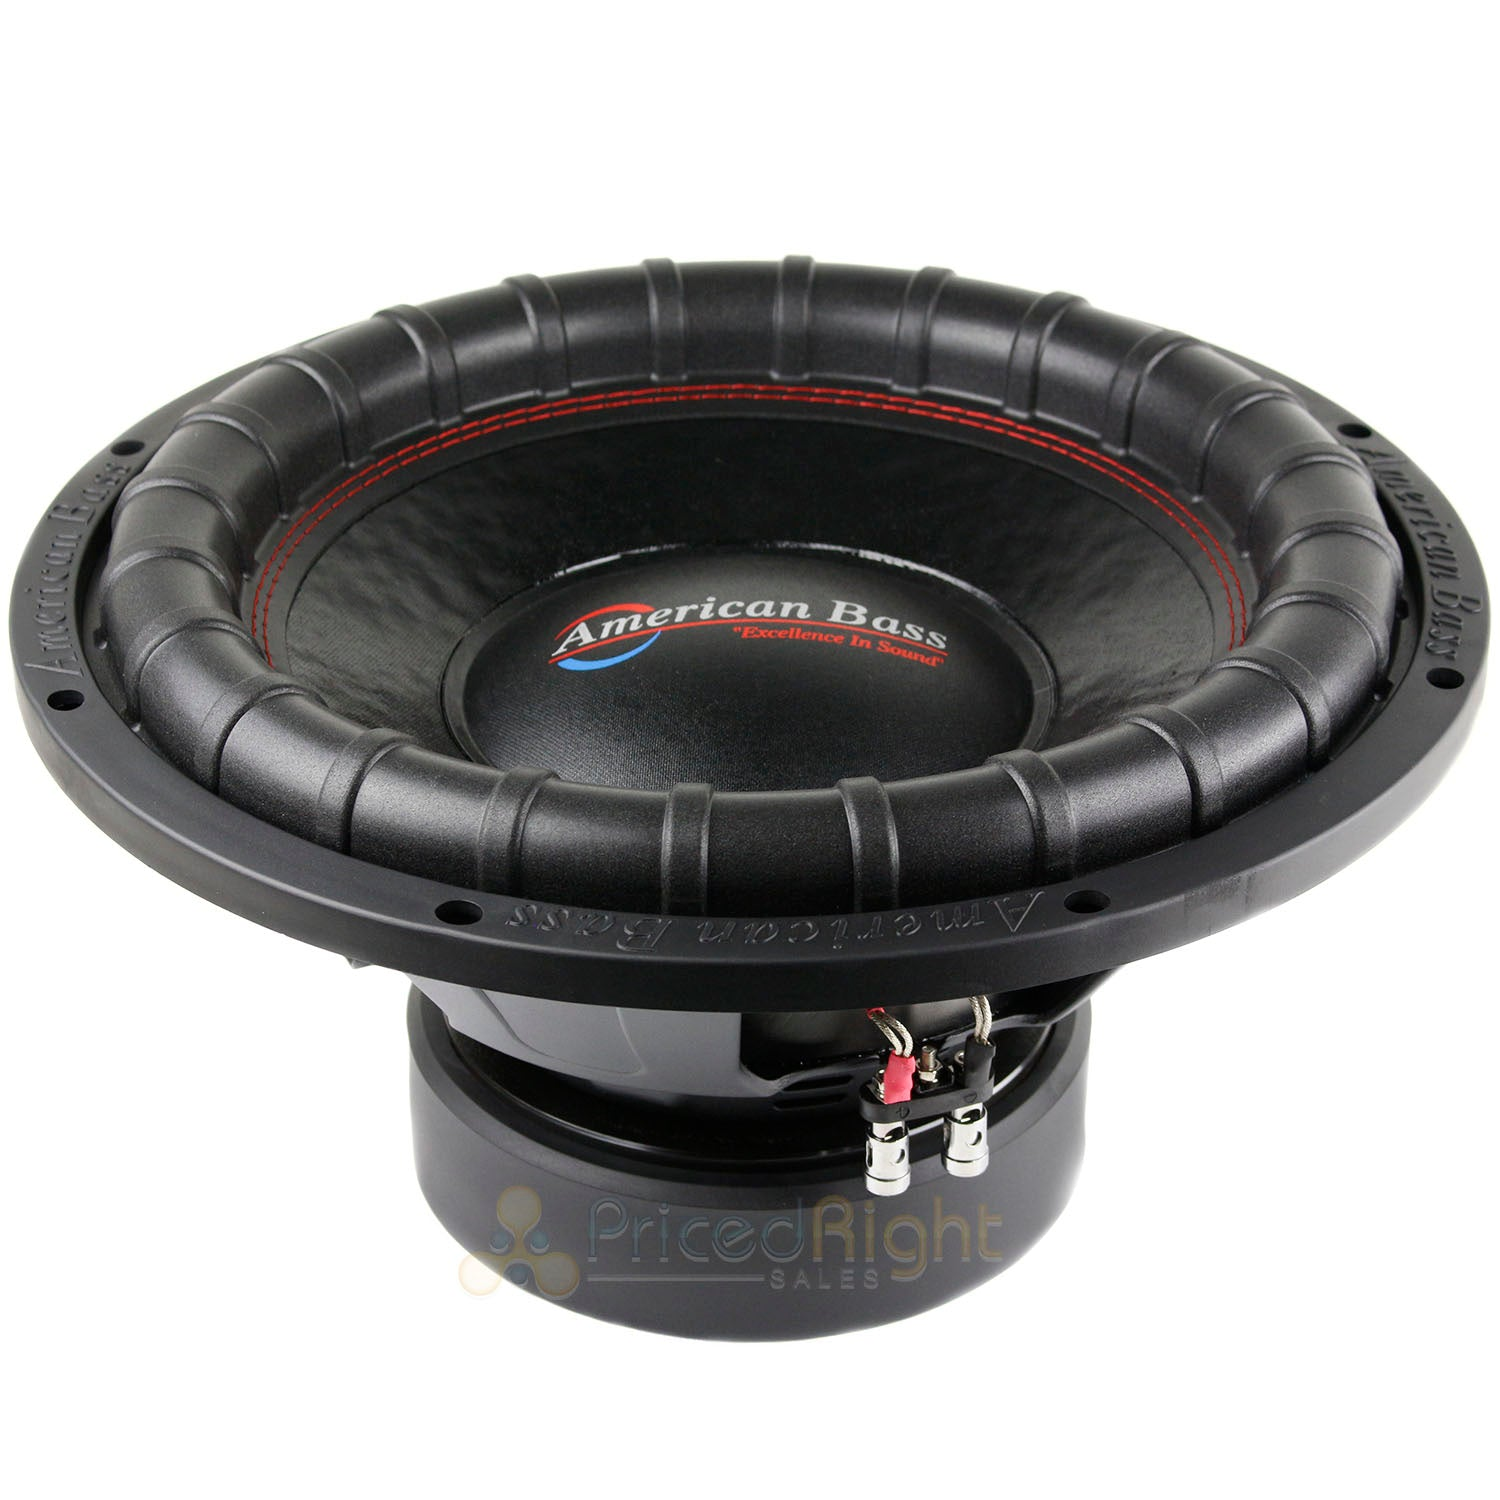 "4 Pack American Bass 15"" Subwoofer 1200W RMS Power DVC 4 Ohm Elite 1544 Series"